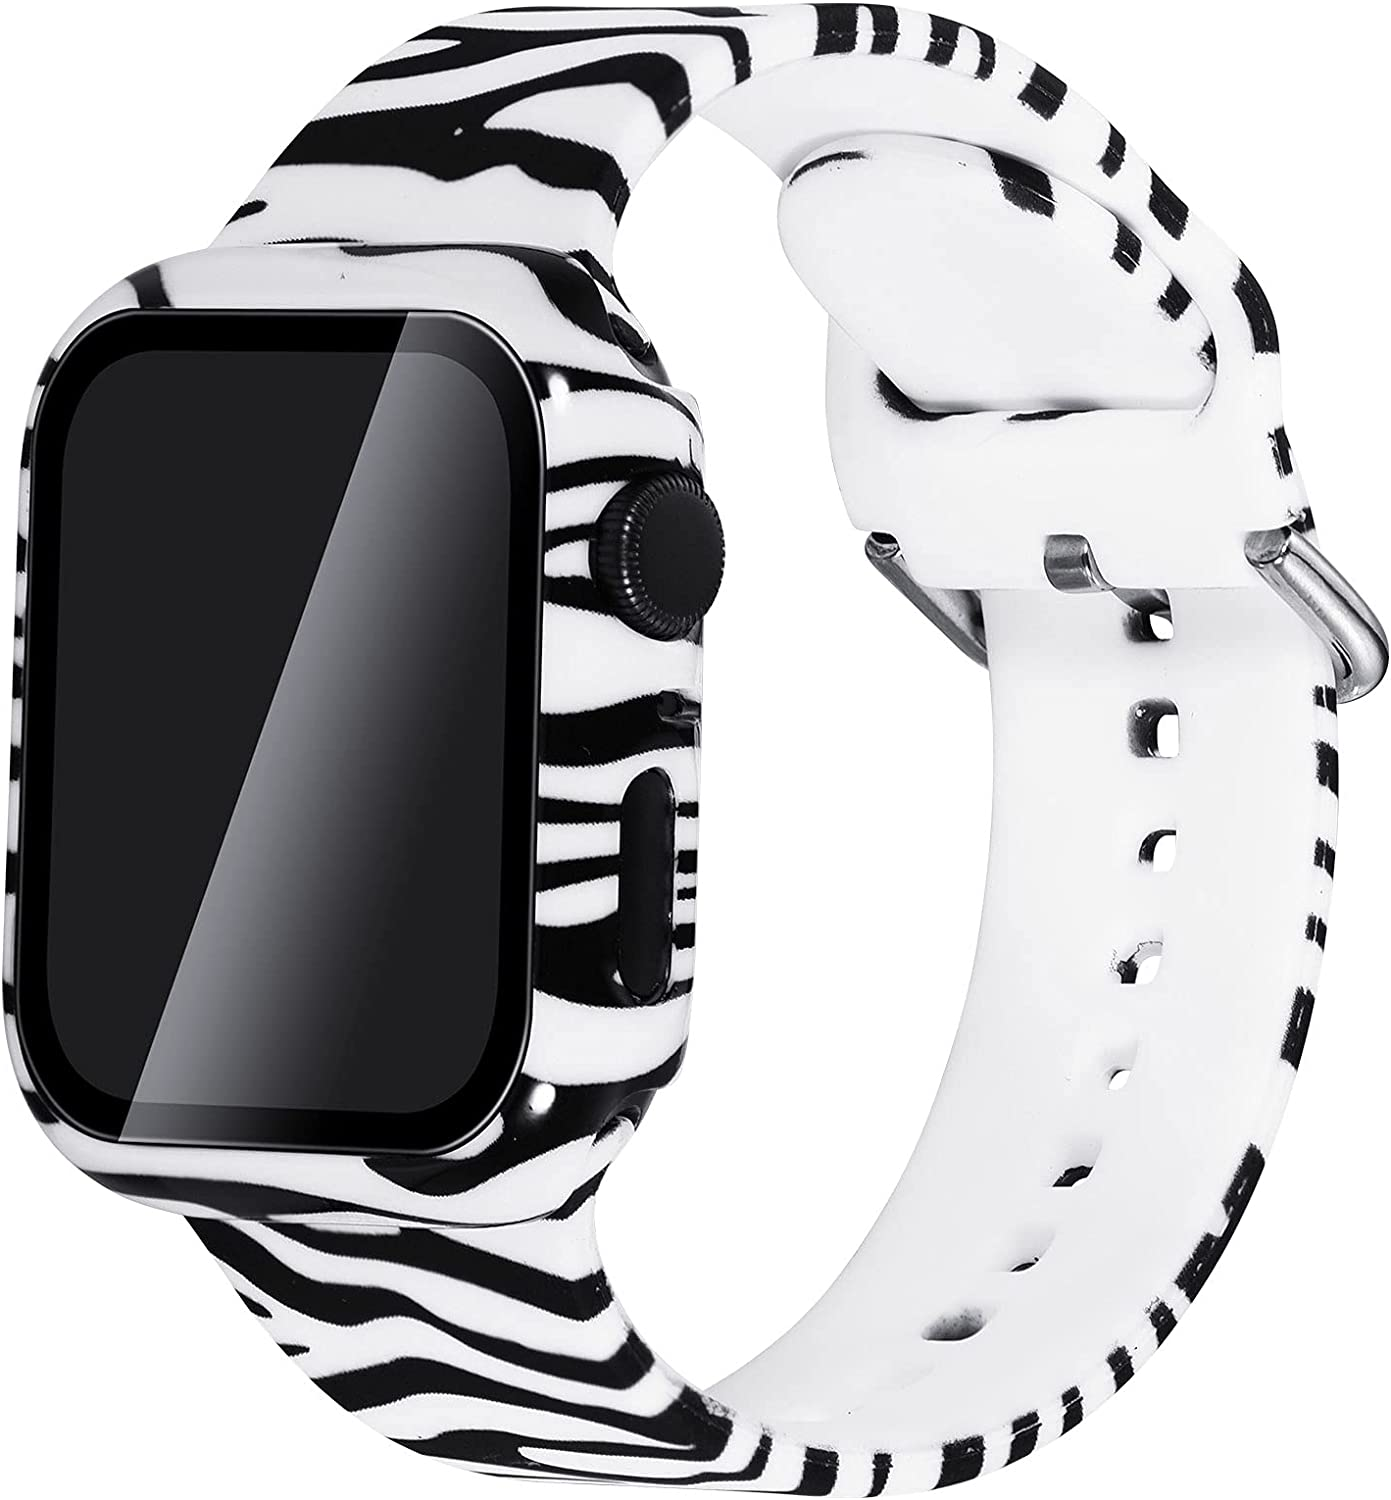 KADES Sport Band with Case Compatible with Apple Watch Bands 38mm 40mm 42mm 44mm, Floral Silicone Printed Fadeless Pattern Replacement Strap Band for iWatch (38mm, Zebra)